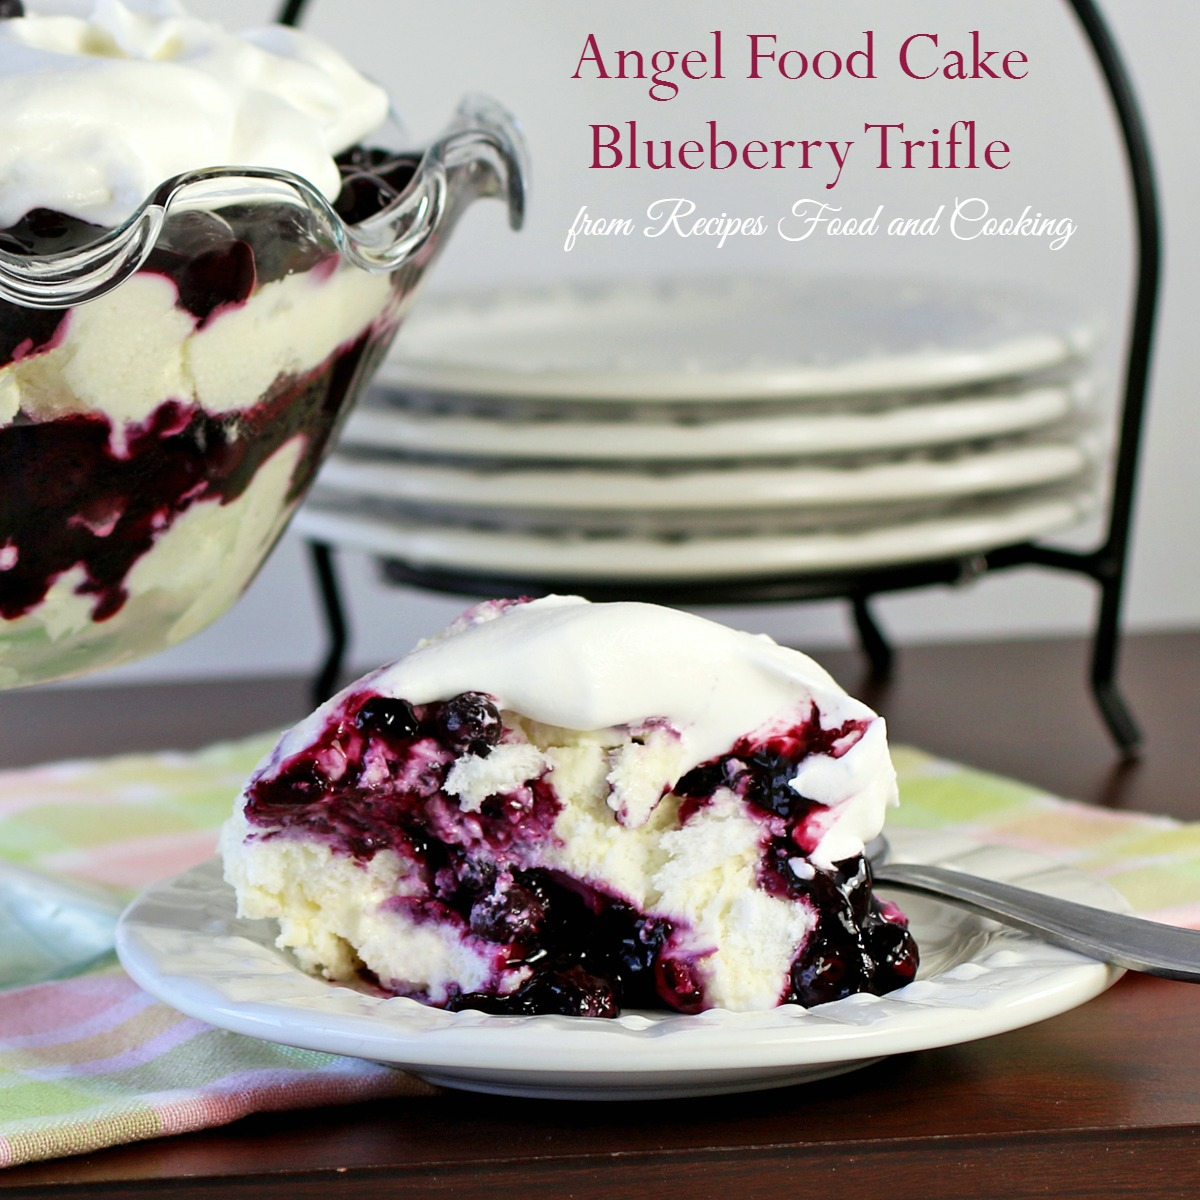 Angel Food Cake Blueberry Trifle Recipes Food And Cooking